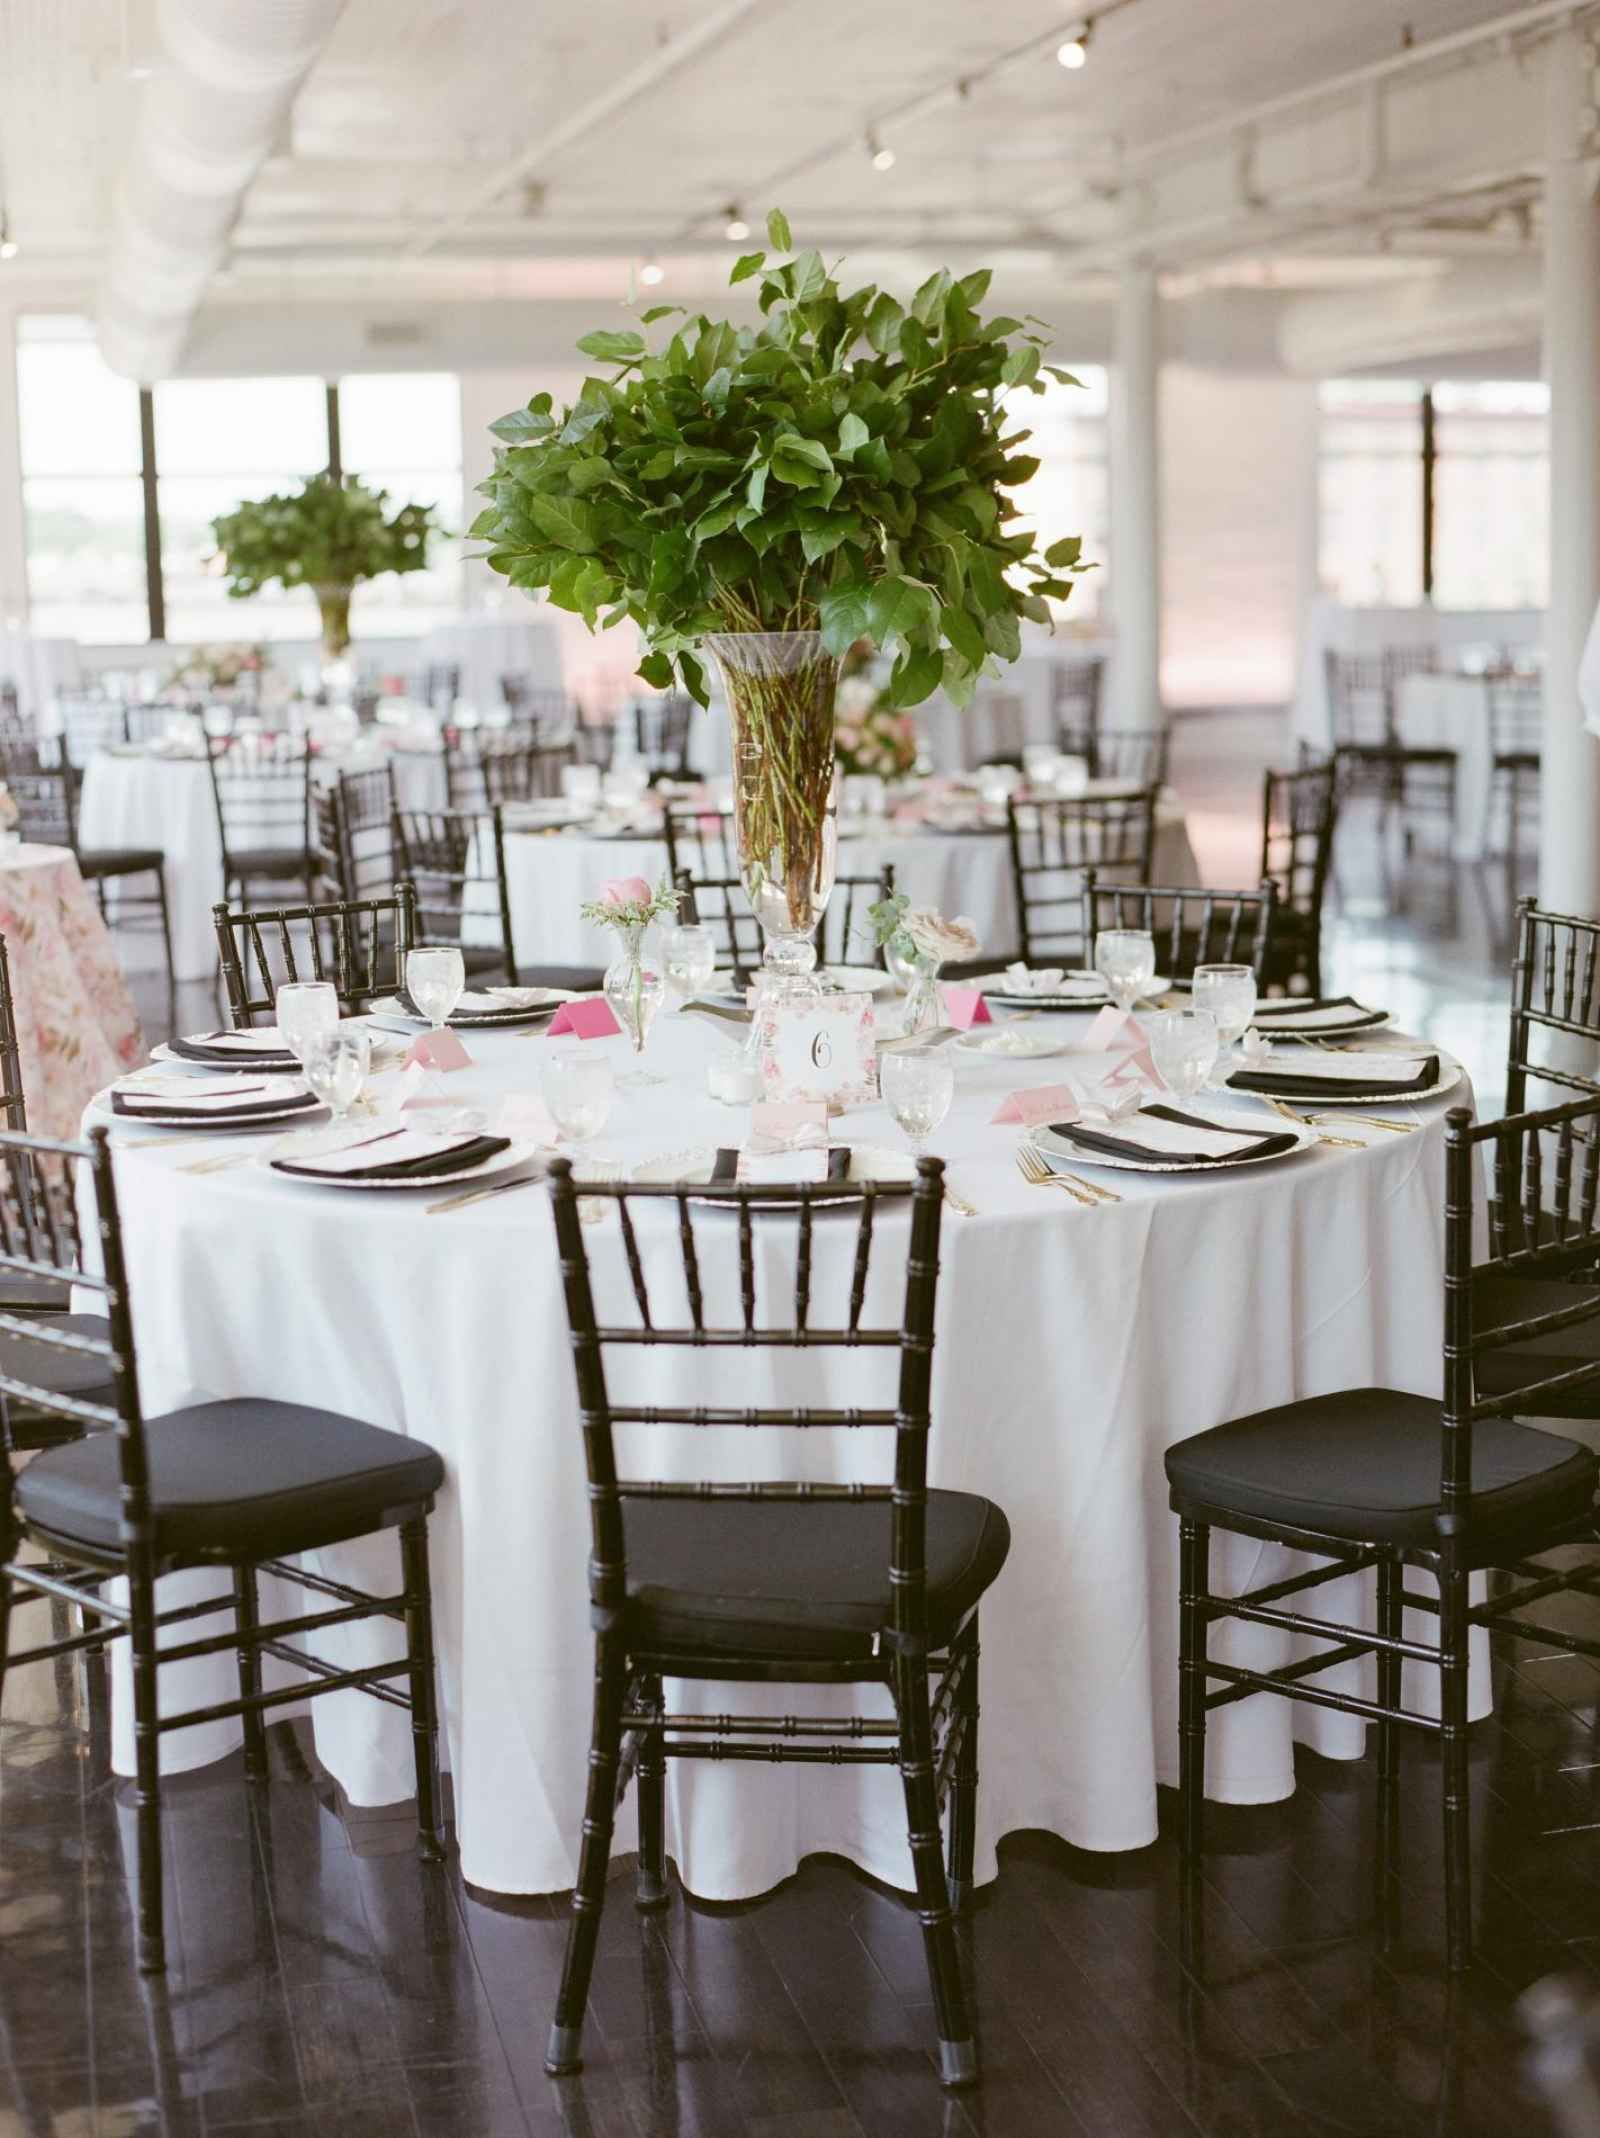 All Greenery Tall Centerpieces The Wedding Story Of Melissa And